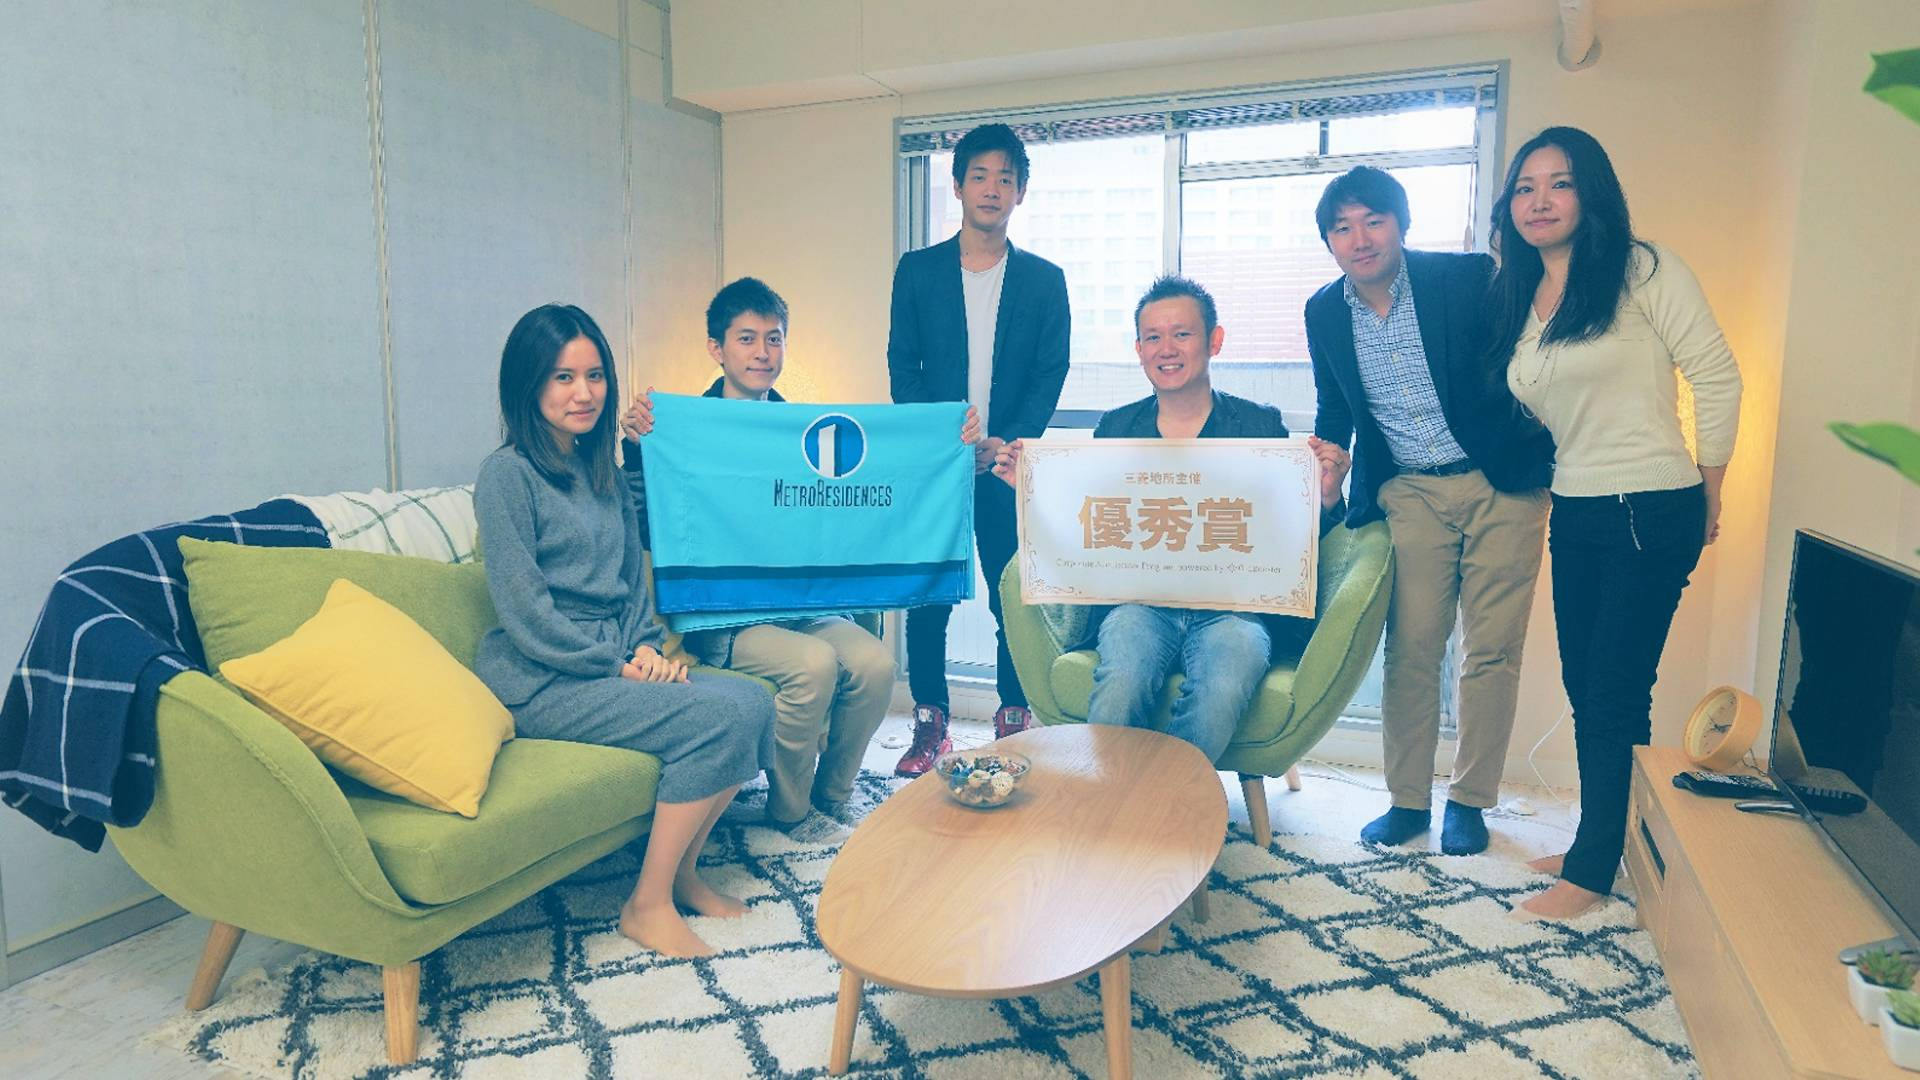 Local start-up MetroResidences set for greater leap in Japan